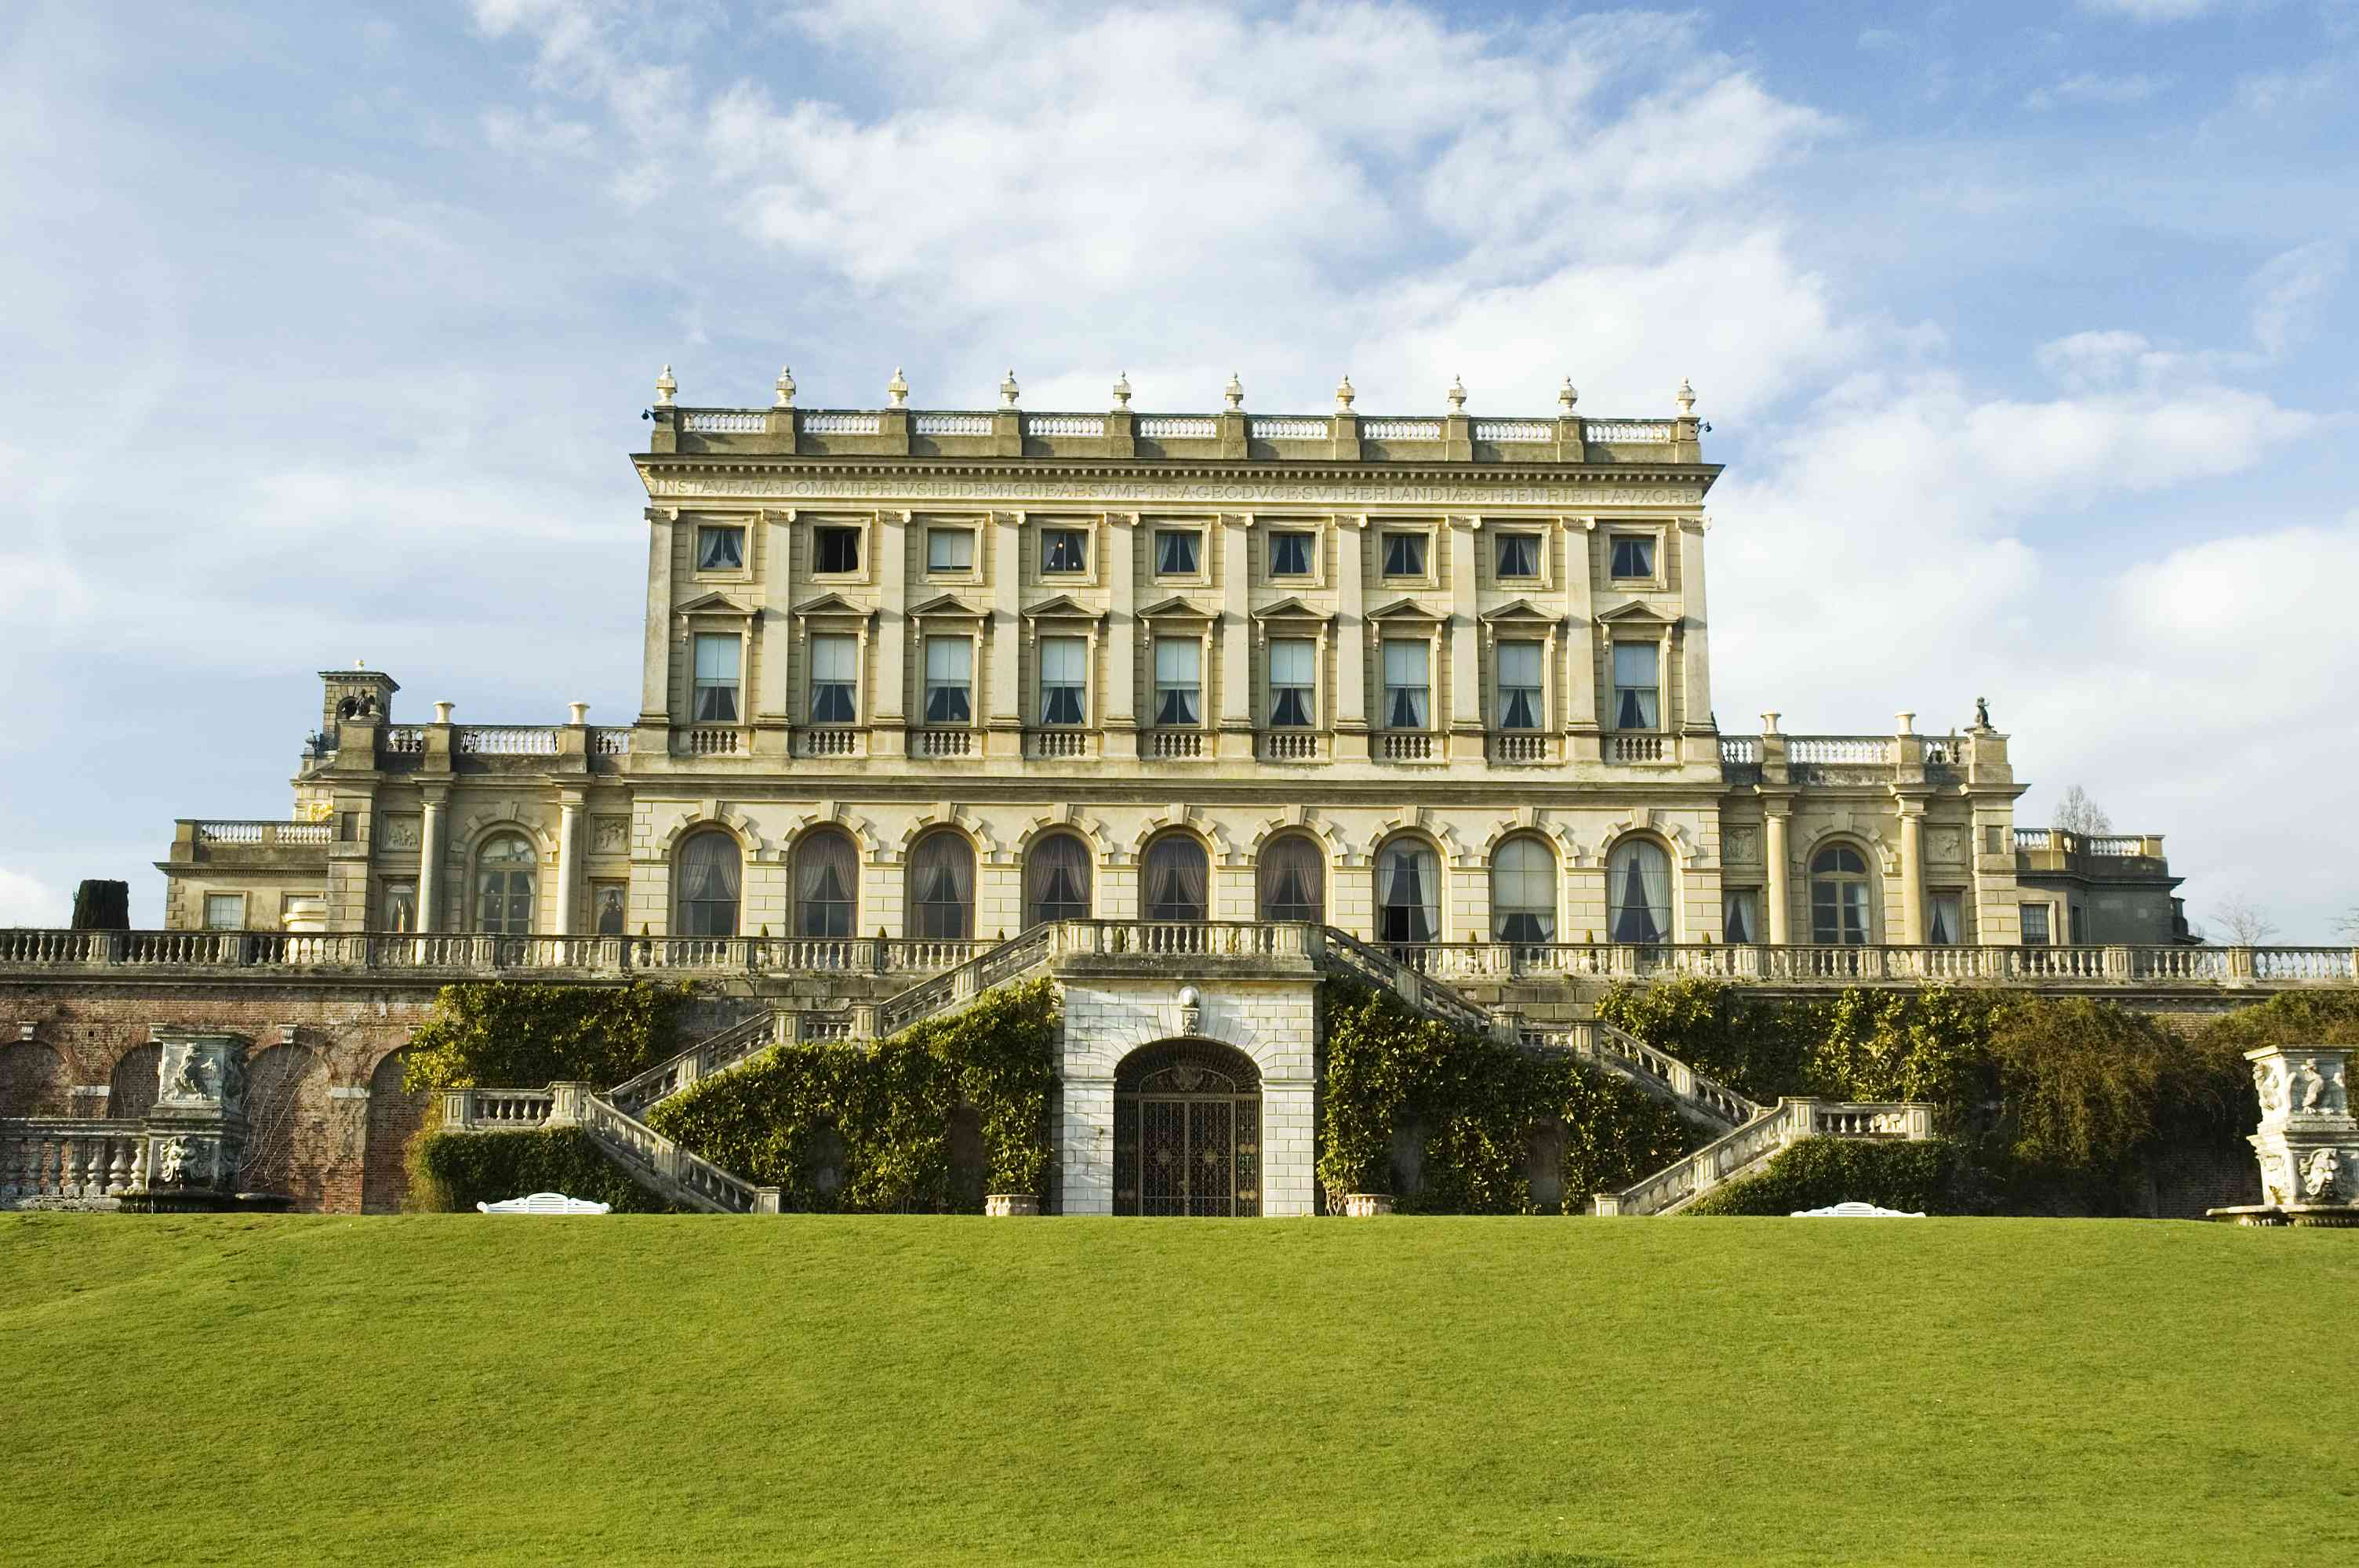 A breath taking view of Cliveden House in England